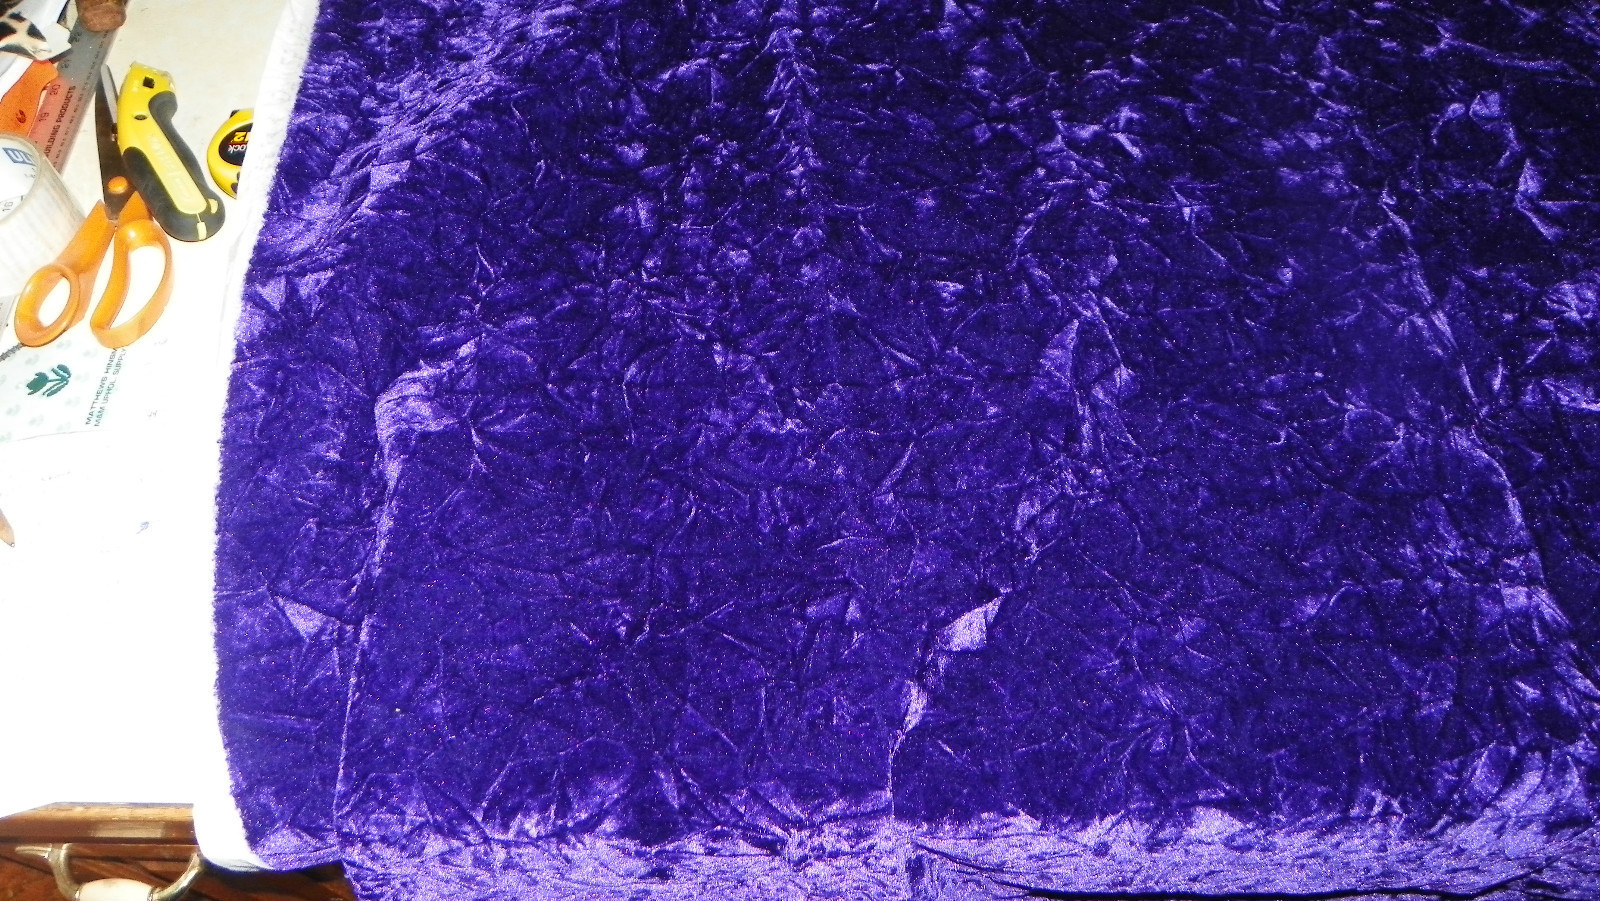 purple crushed velvet bedroom chair low back lawn target t2ec16d zoe9s5ngif6brhfsomfkq 60 57 jpg